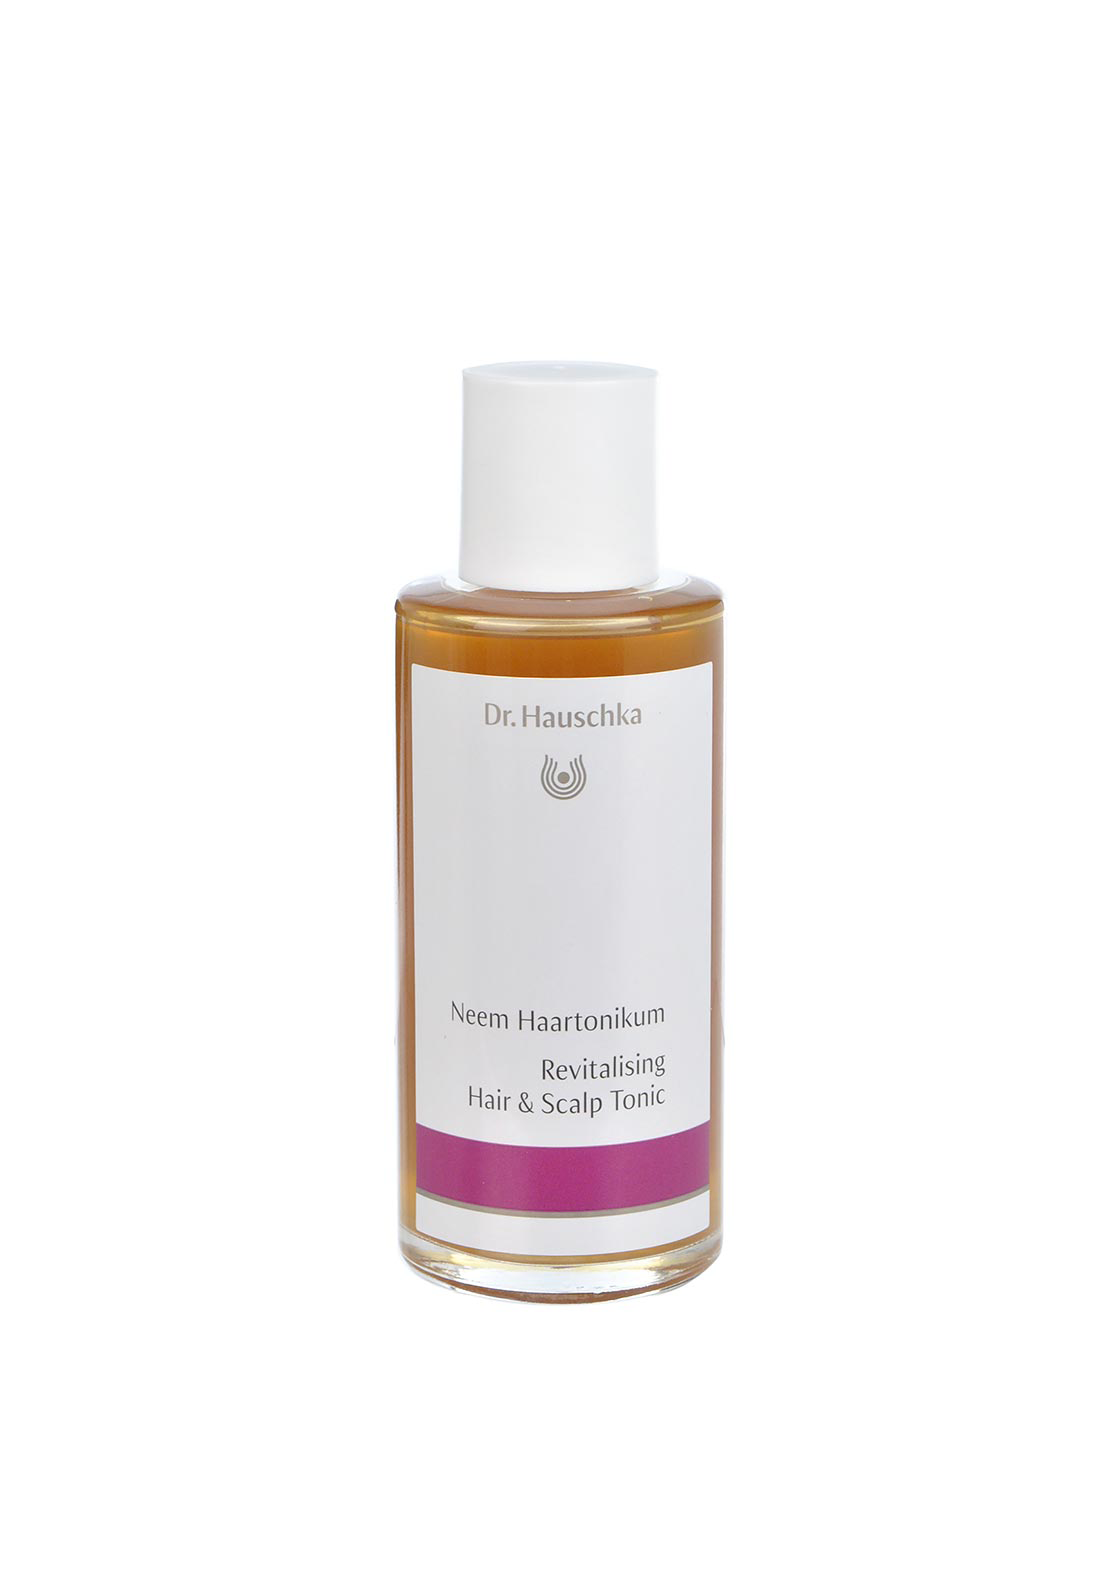 Dr. Hauschka Revitalising Hair & Scalp Tonic, 100ml